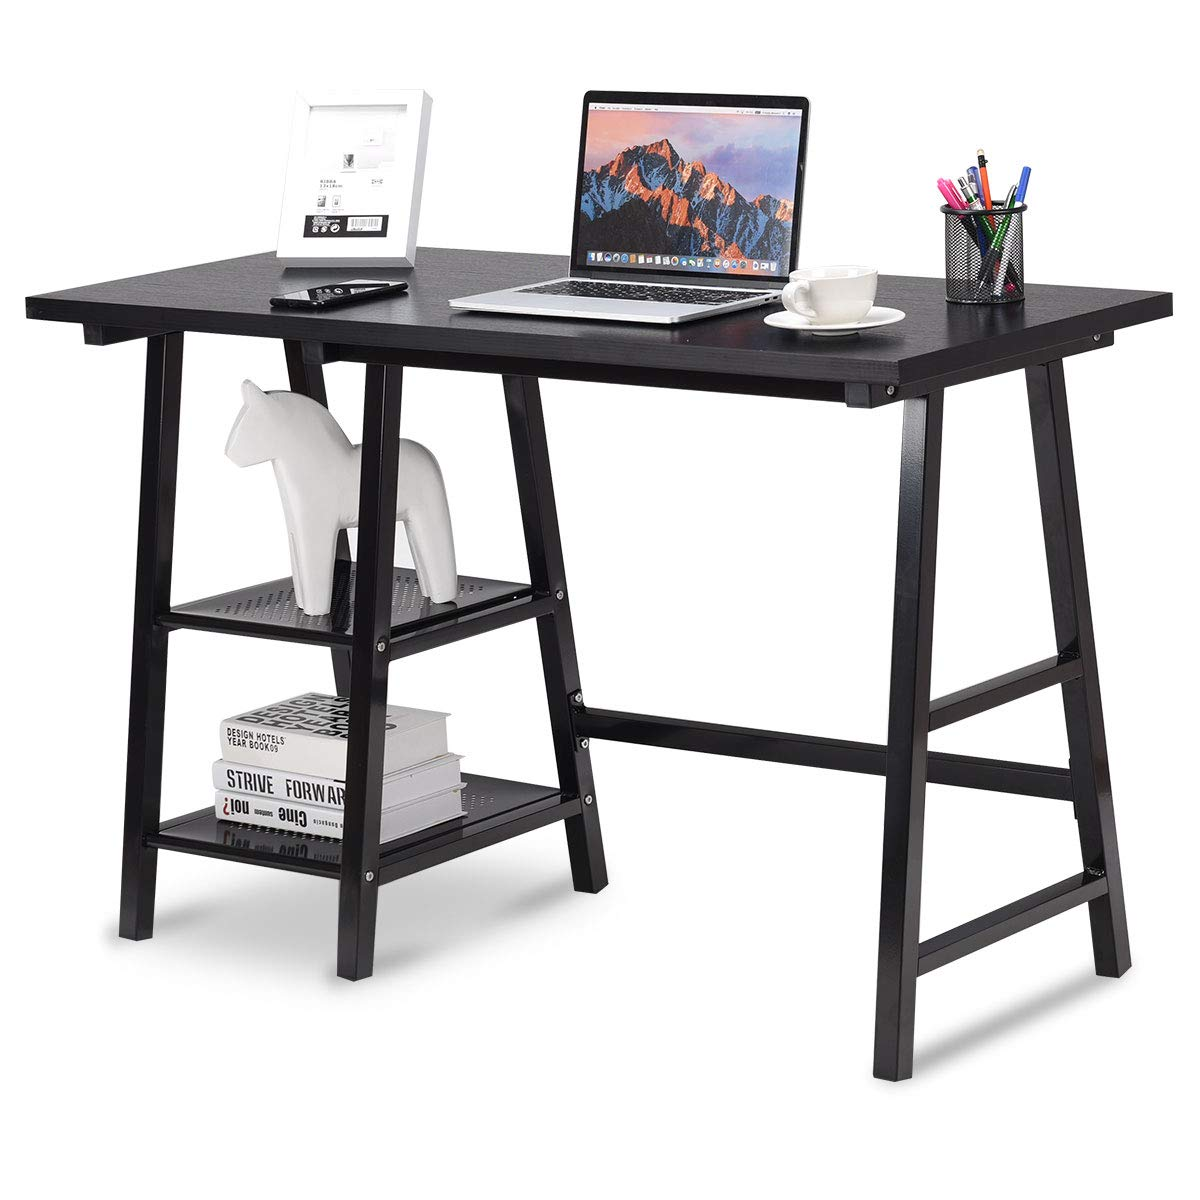 Tangkula Writing Computer Desk, Trestle Desk Study Desk, Laptop PC Desk, Modern Wood Vintage Style Reversible Storage Shelf, Home Office Furniture Sturdy Table Study Table (Black)